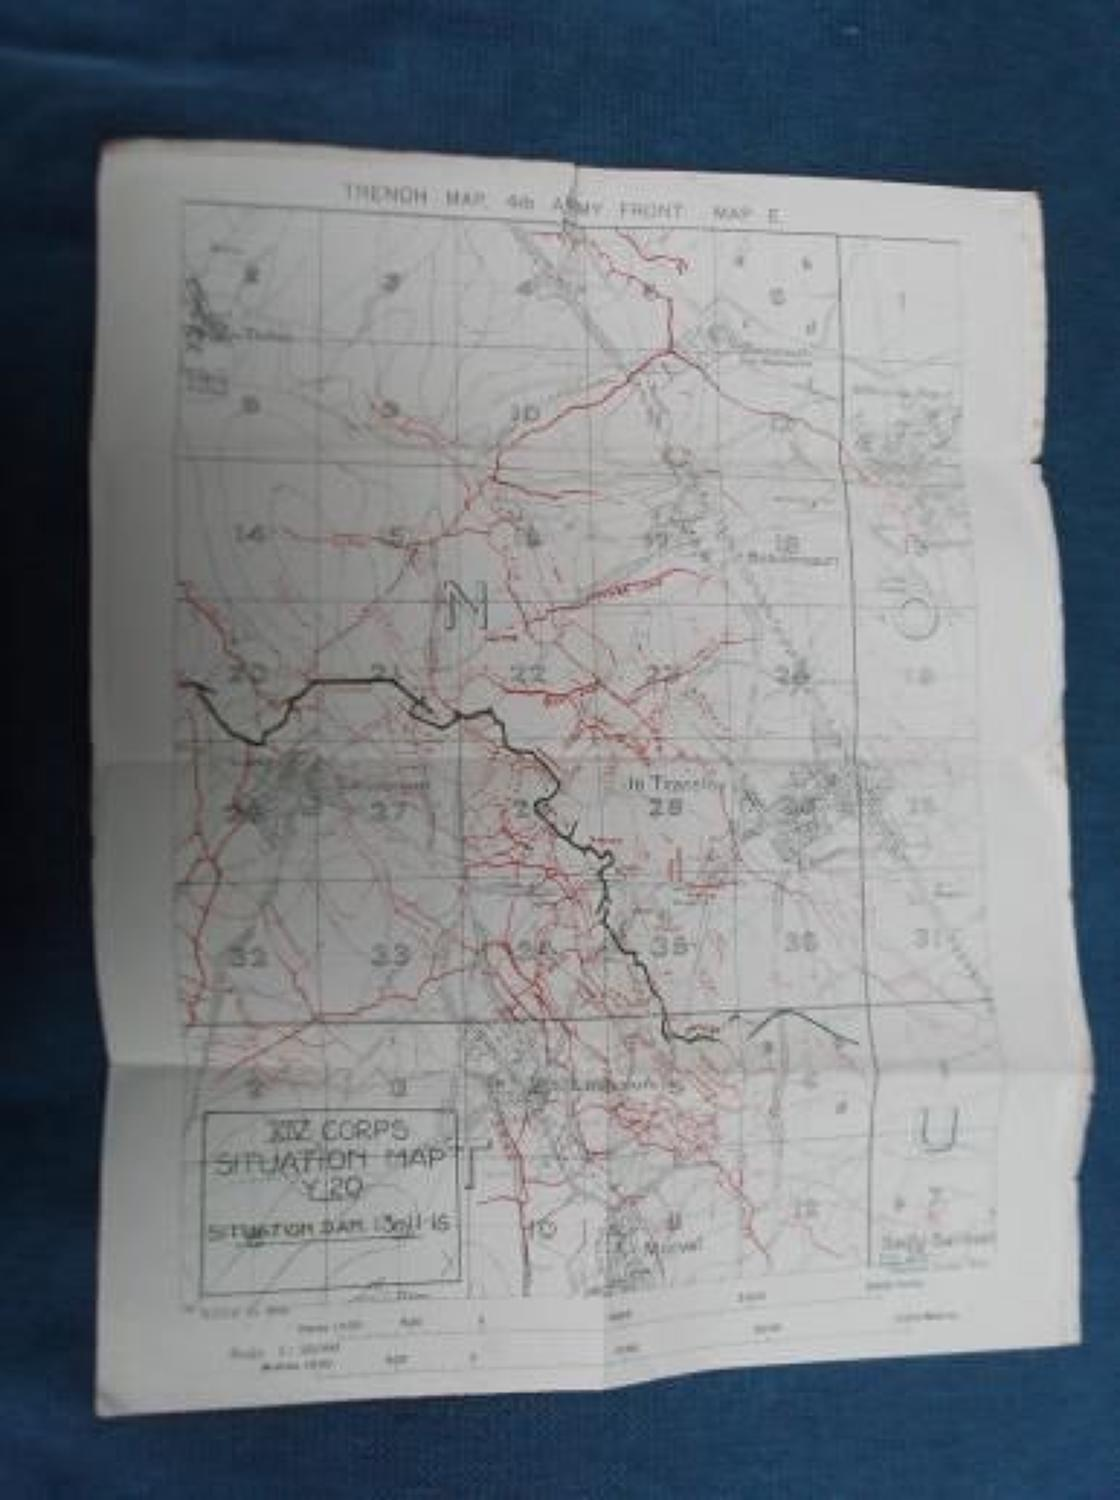 WW1 British Army Trench Map Gueudecourt 13th November 1916.